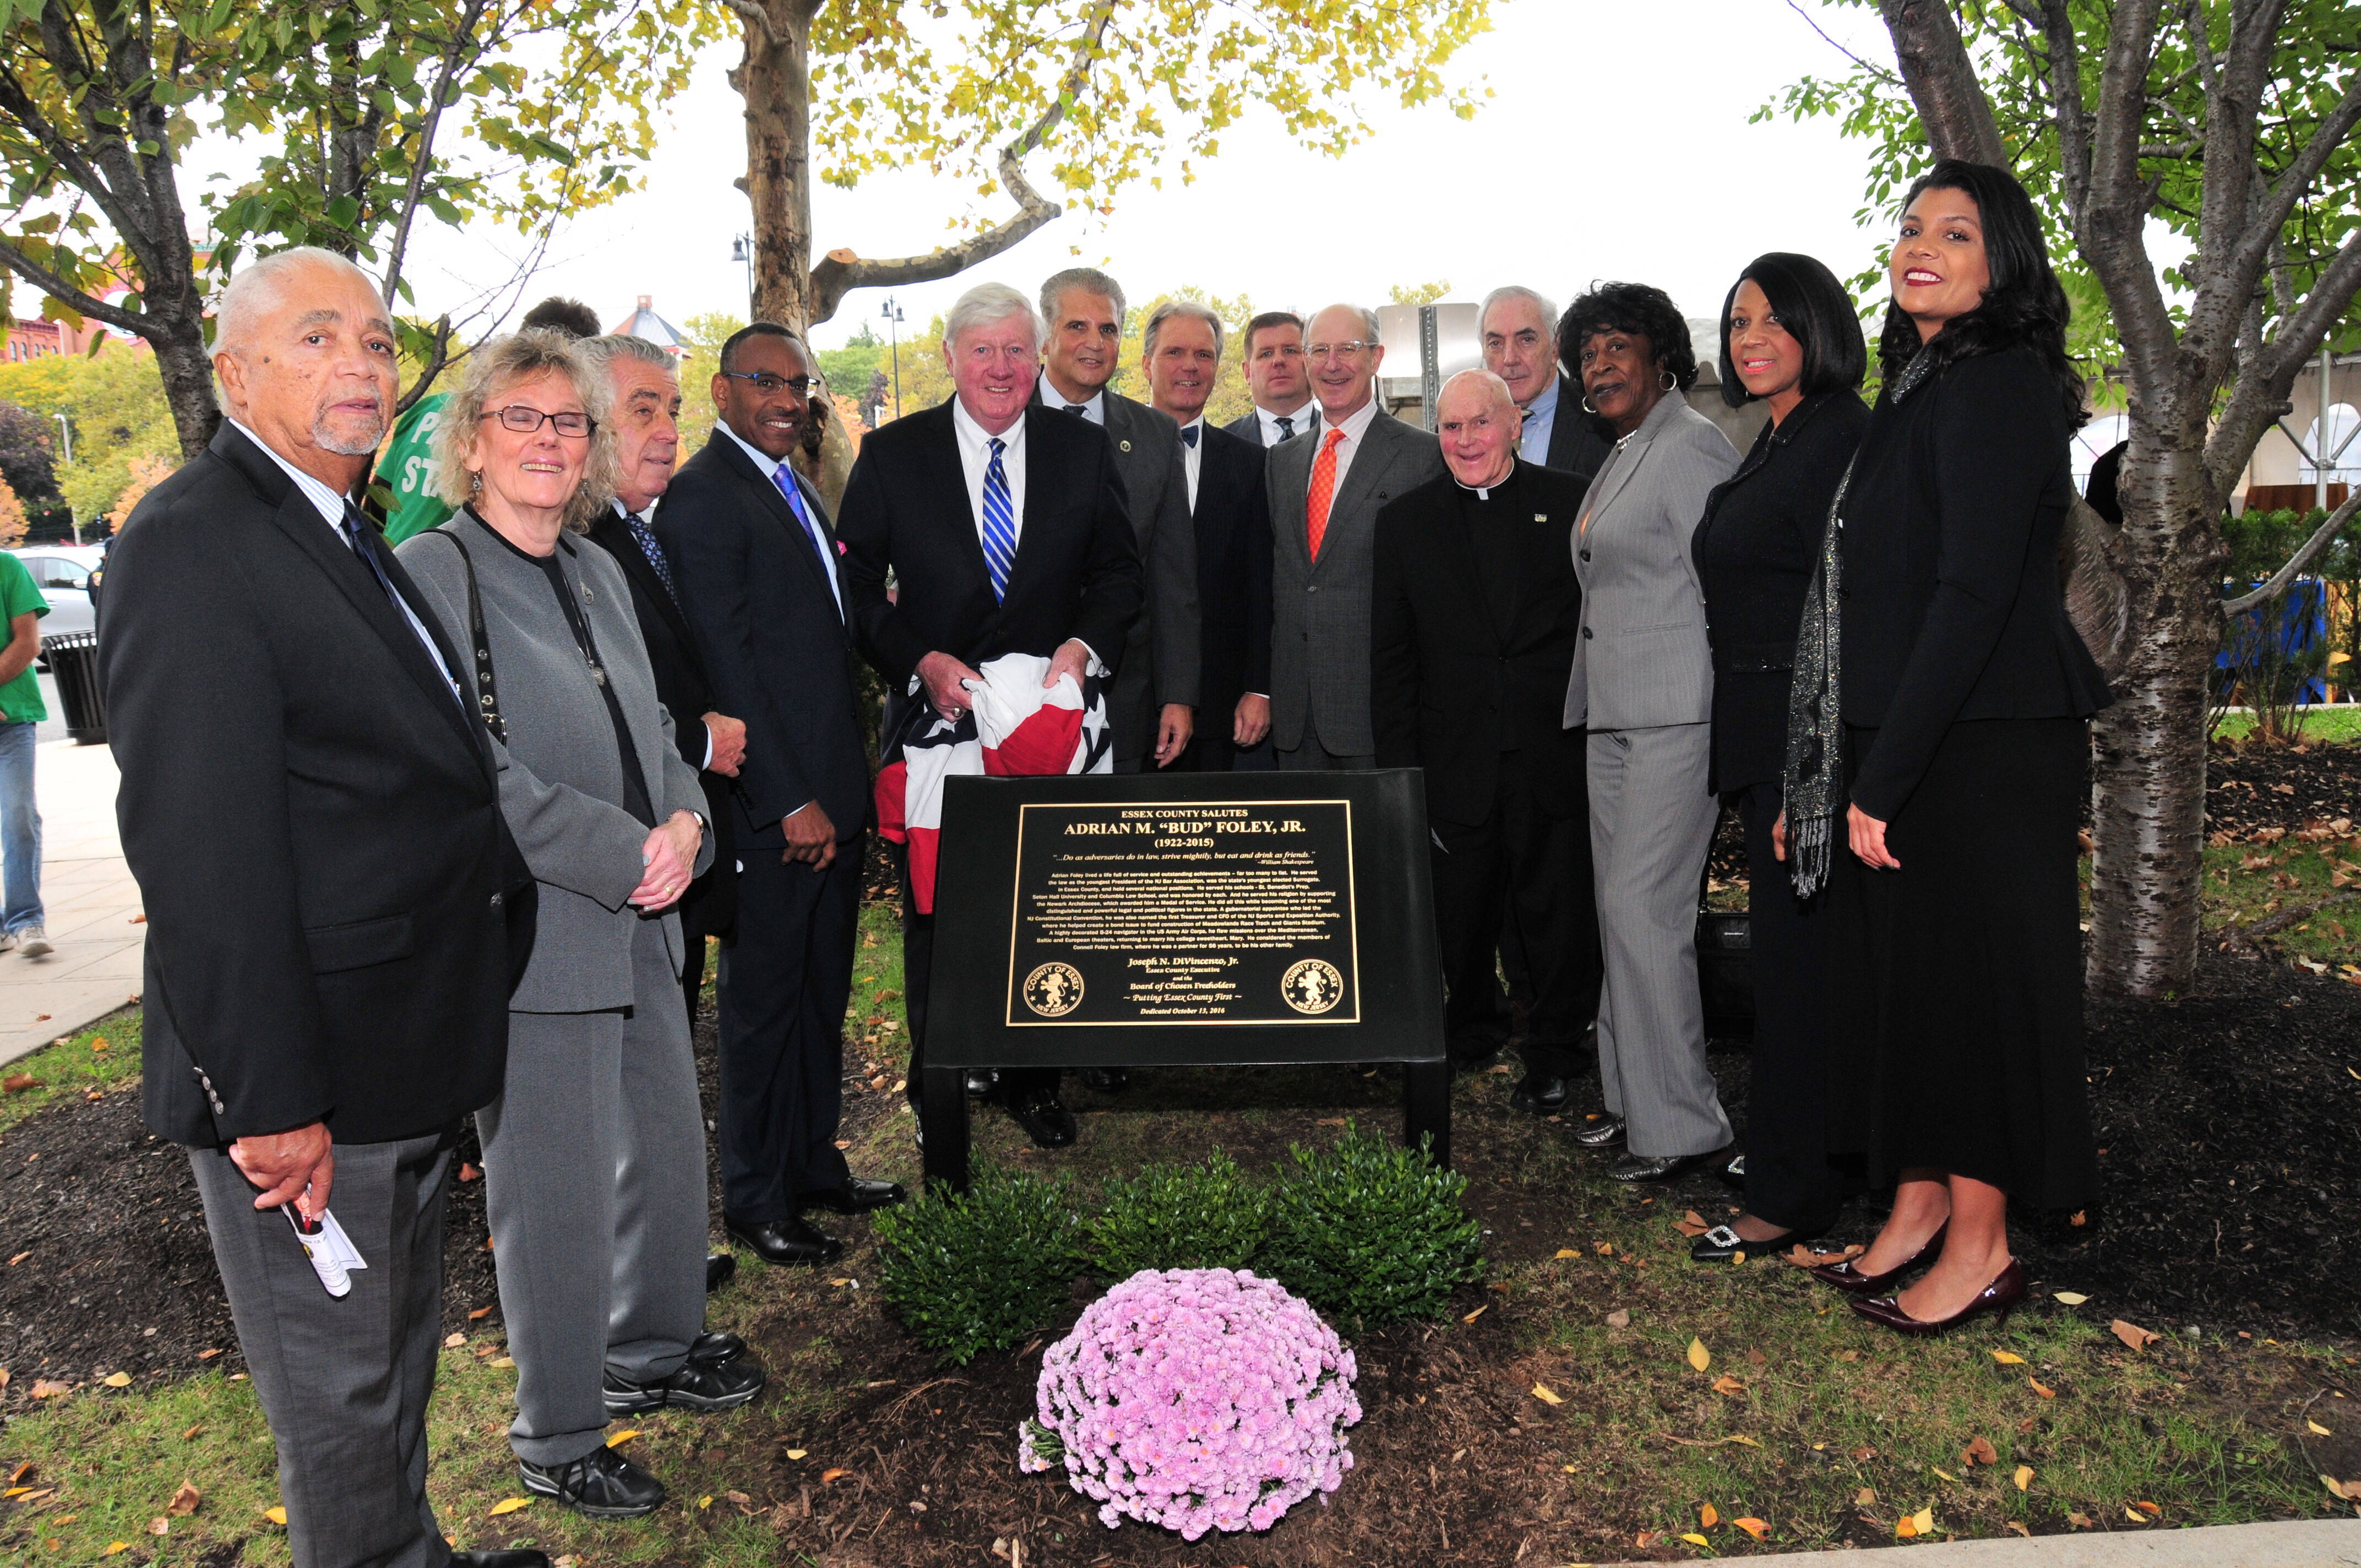 70a8834dbec5087b689c_foley_plaque_dedication.JPG